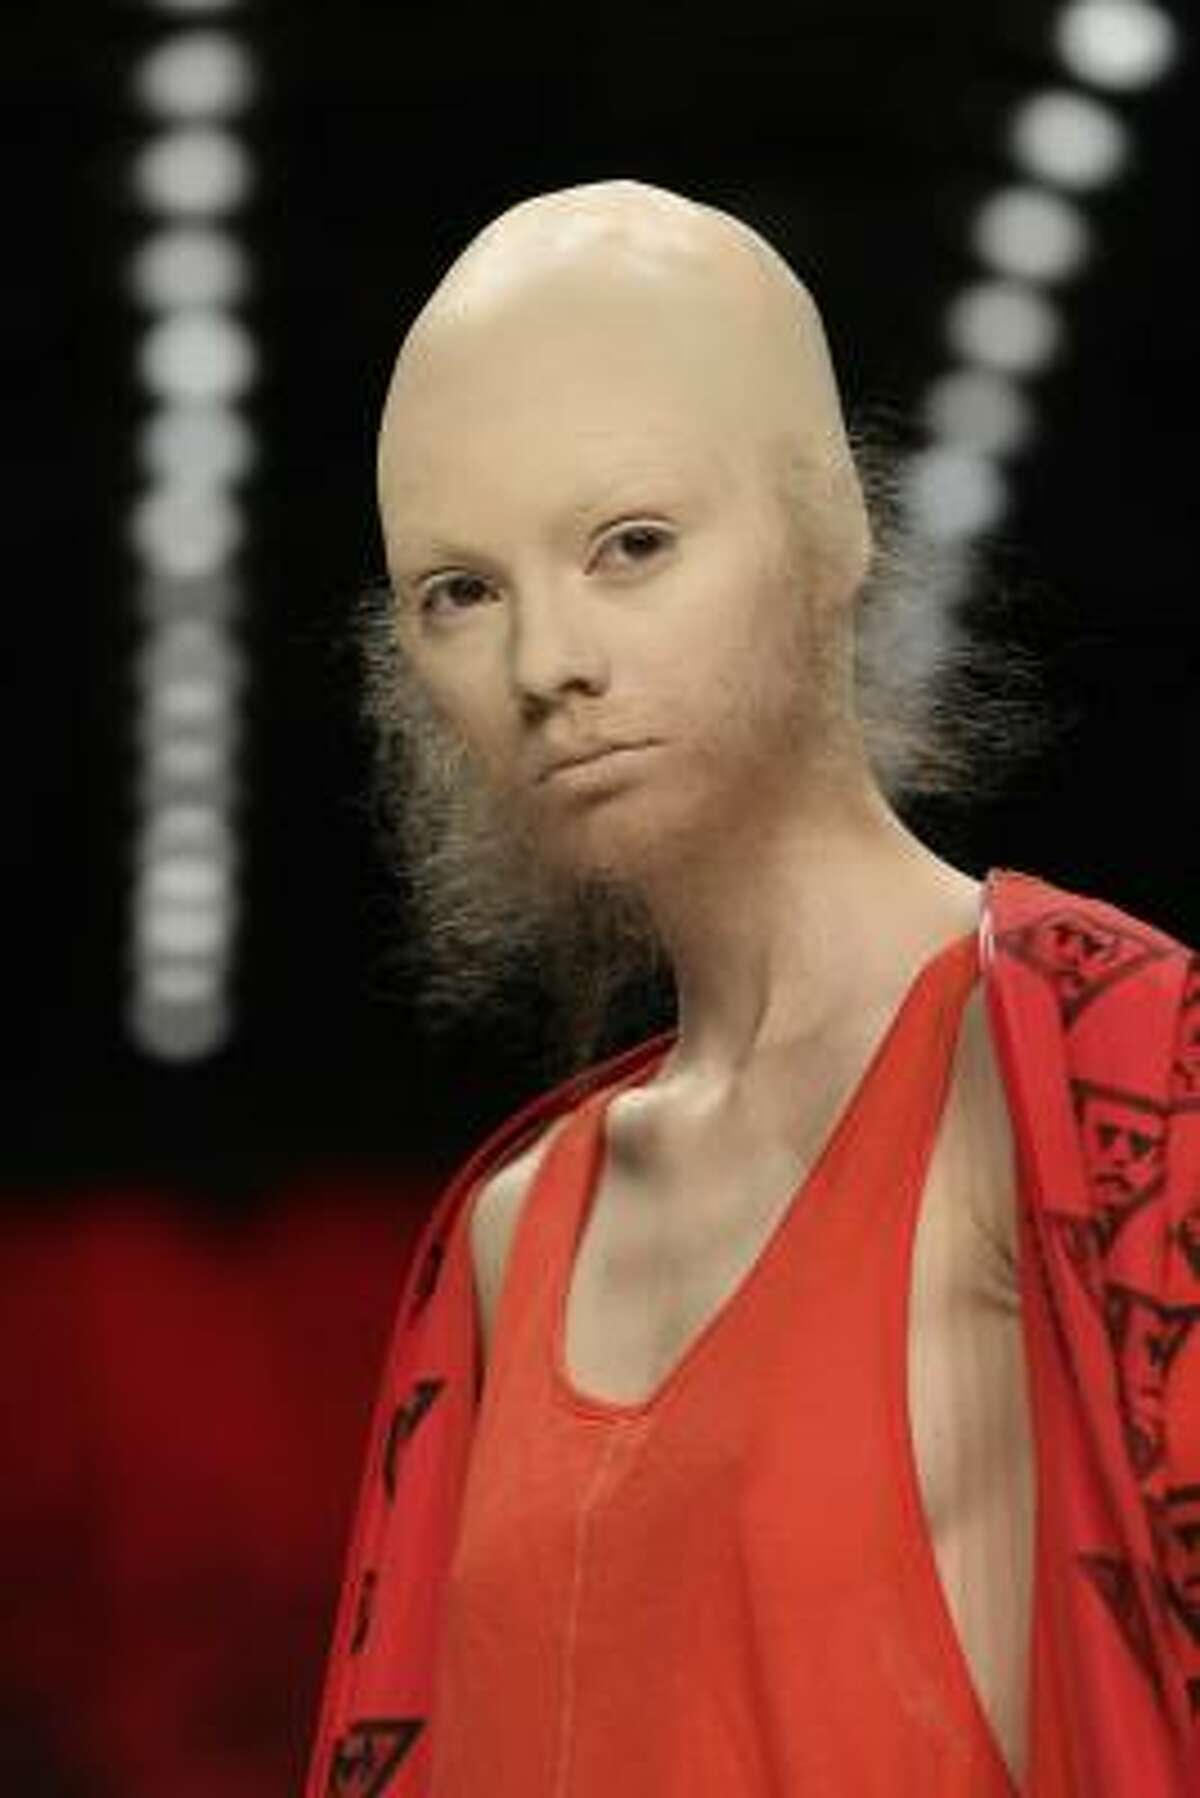 Patrick Mohr's Spring/Summer 2011 collection was worn by models with skullcaps and glued-on fuzzy facial hair.